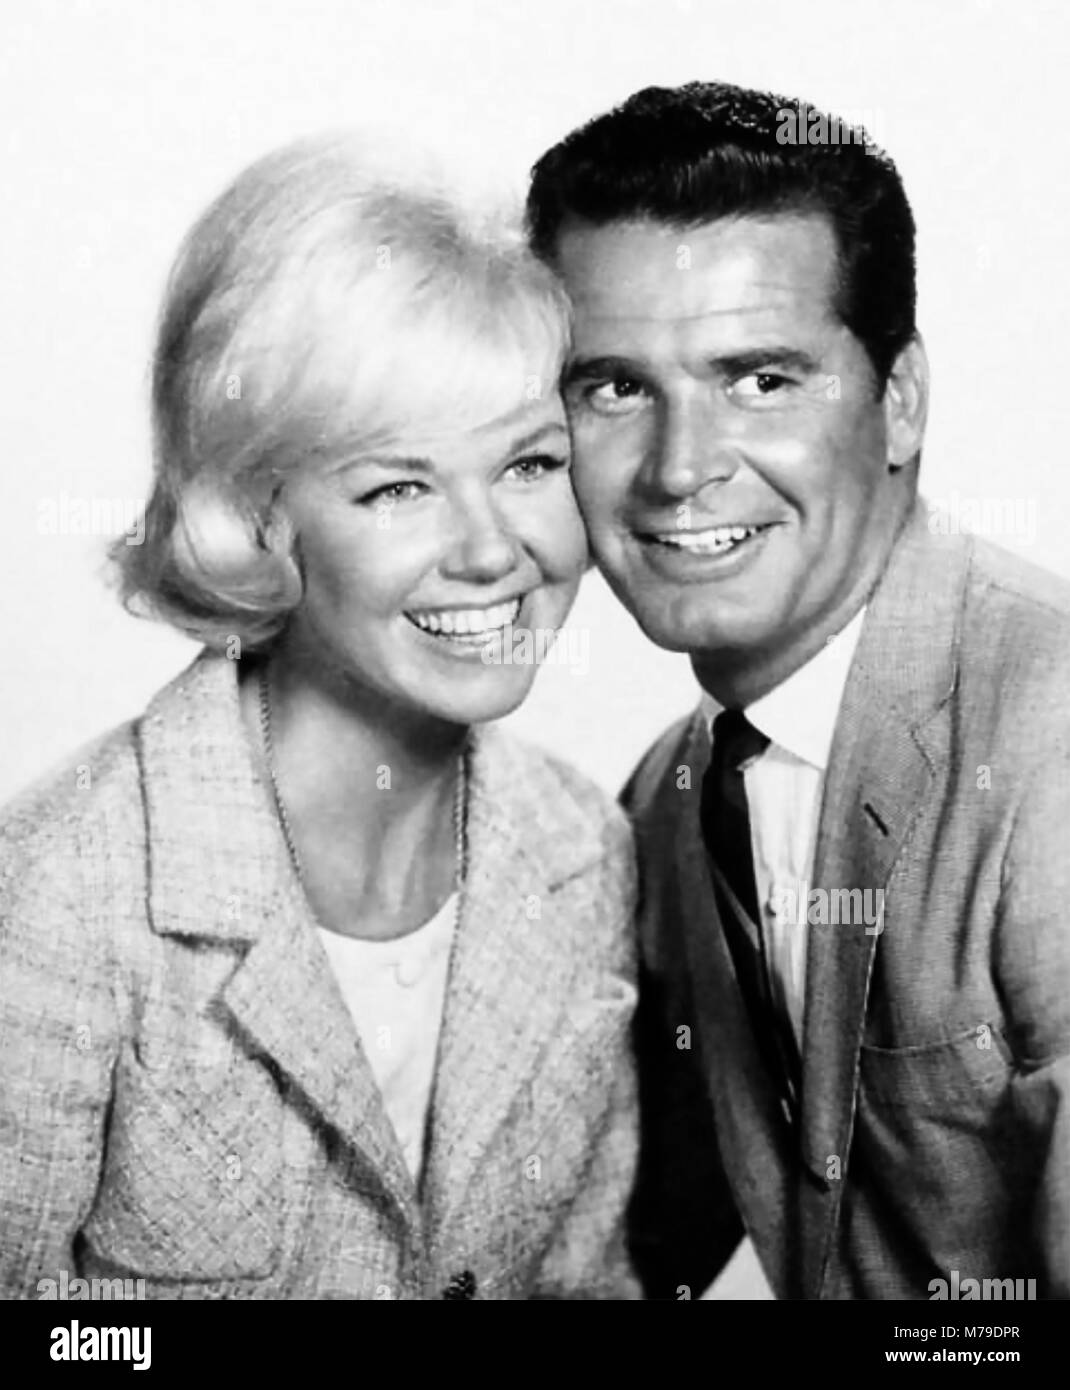 MOVE OVER DARLING 1963 20th Century Fox film with Doris Day and James Garner - Stock Image